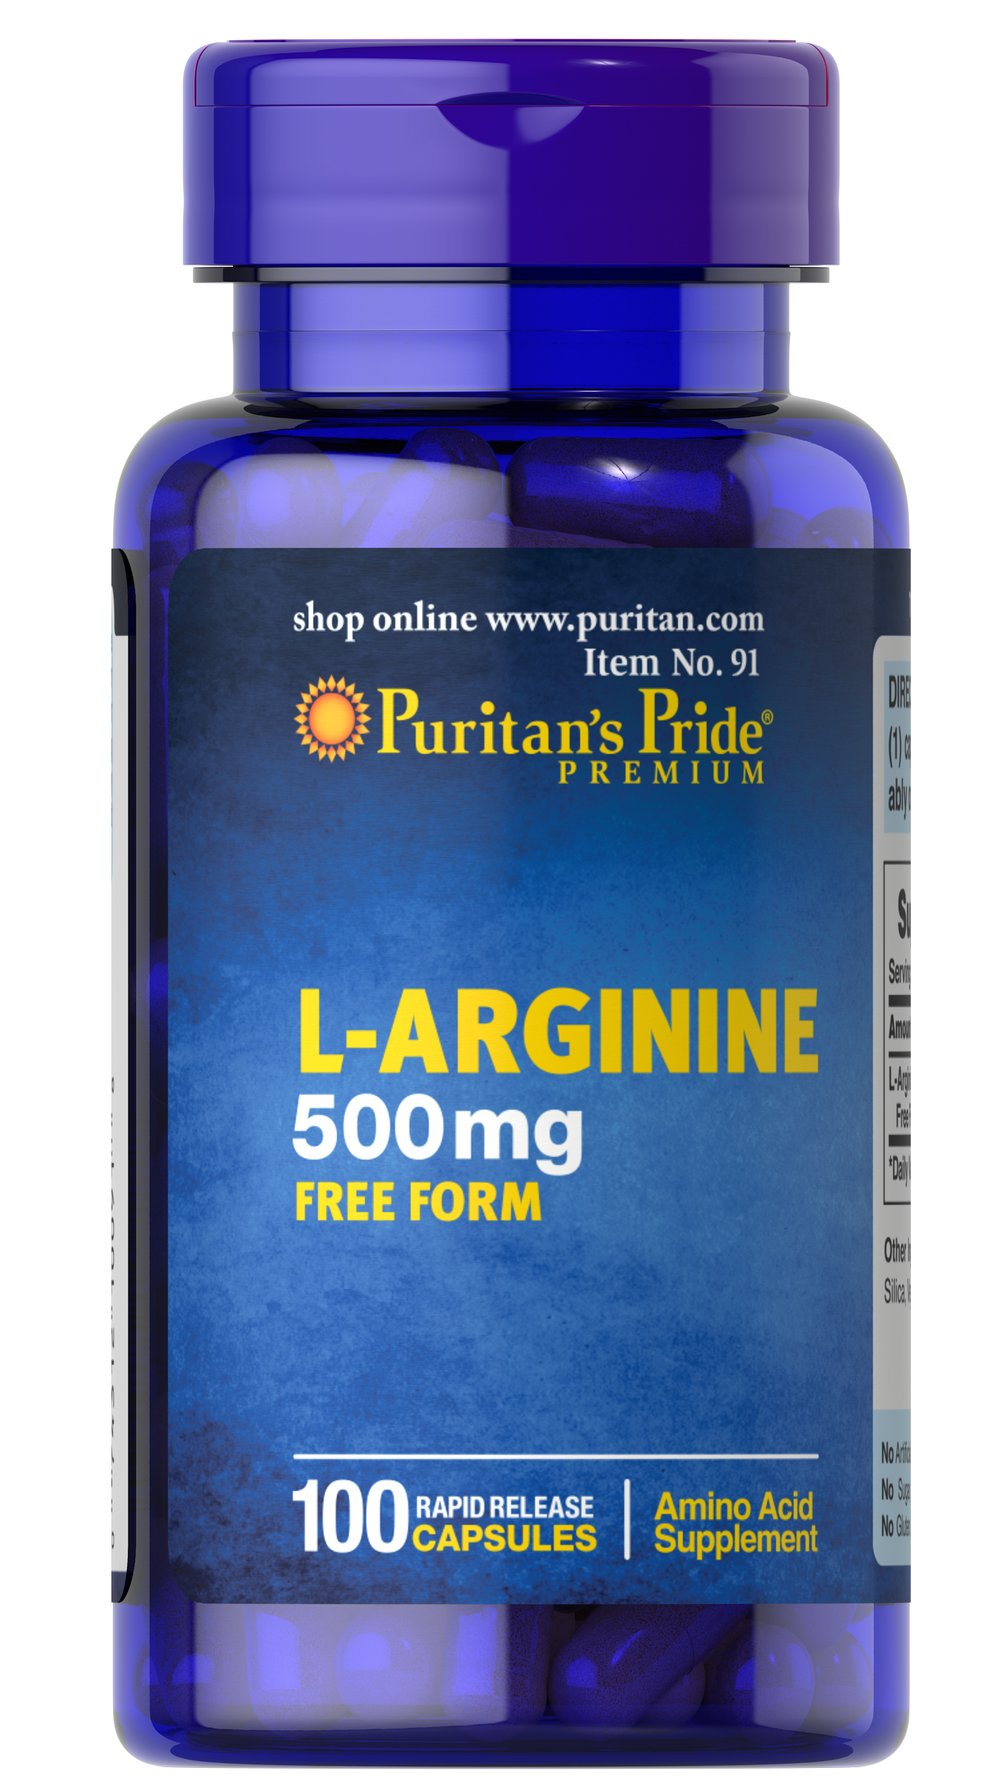 L-Arginine 500 mg <p>Arginine is one of 20 amino acids, the building blocks of protein.** Arginine can  serve as a source of energy, and is involved in various pathways throughout the body.** Arginine supports the effect of exercise and is one of the most important amino acids involved in immune function.** Adults can take one caplet daily. </p> 100 Capsules 500 mg $16.99